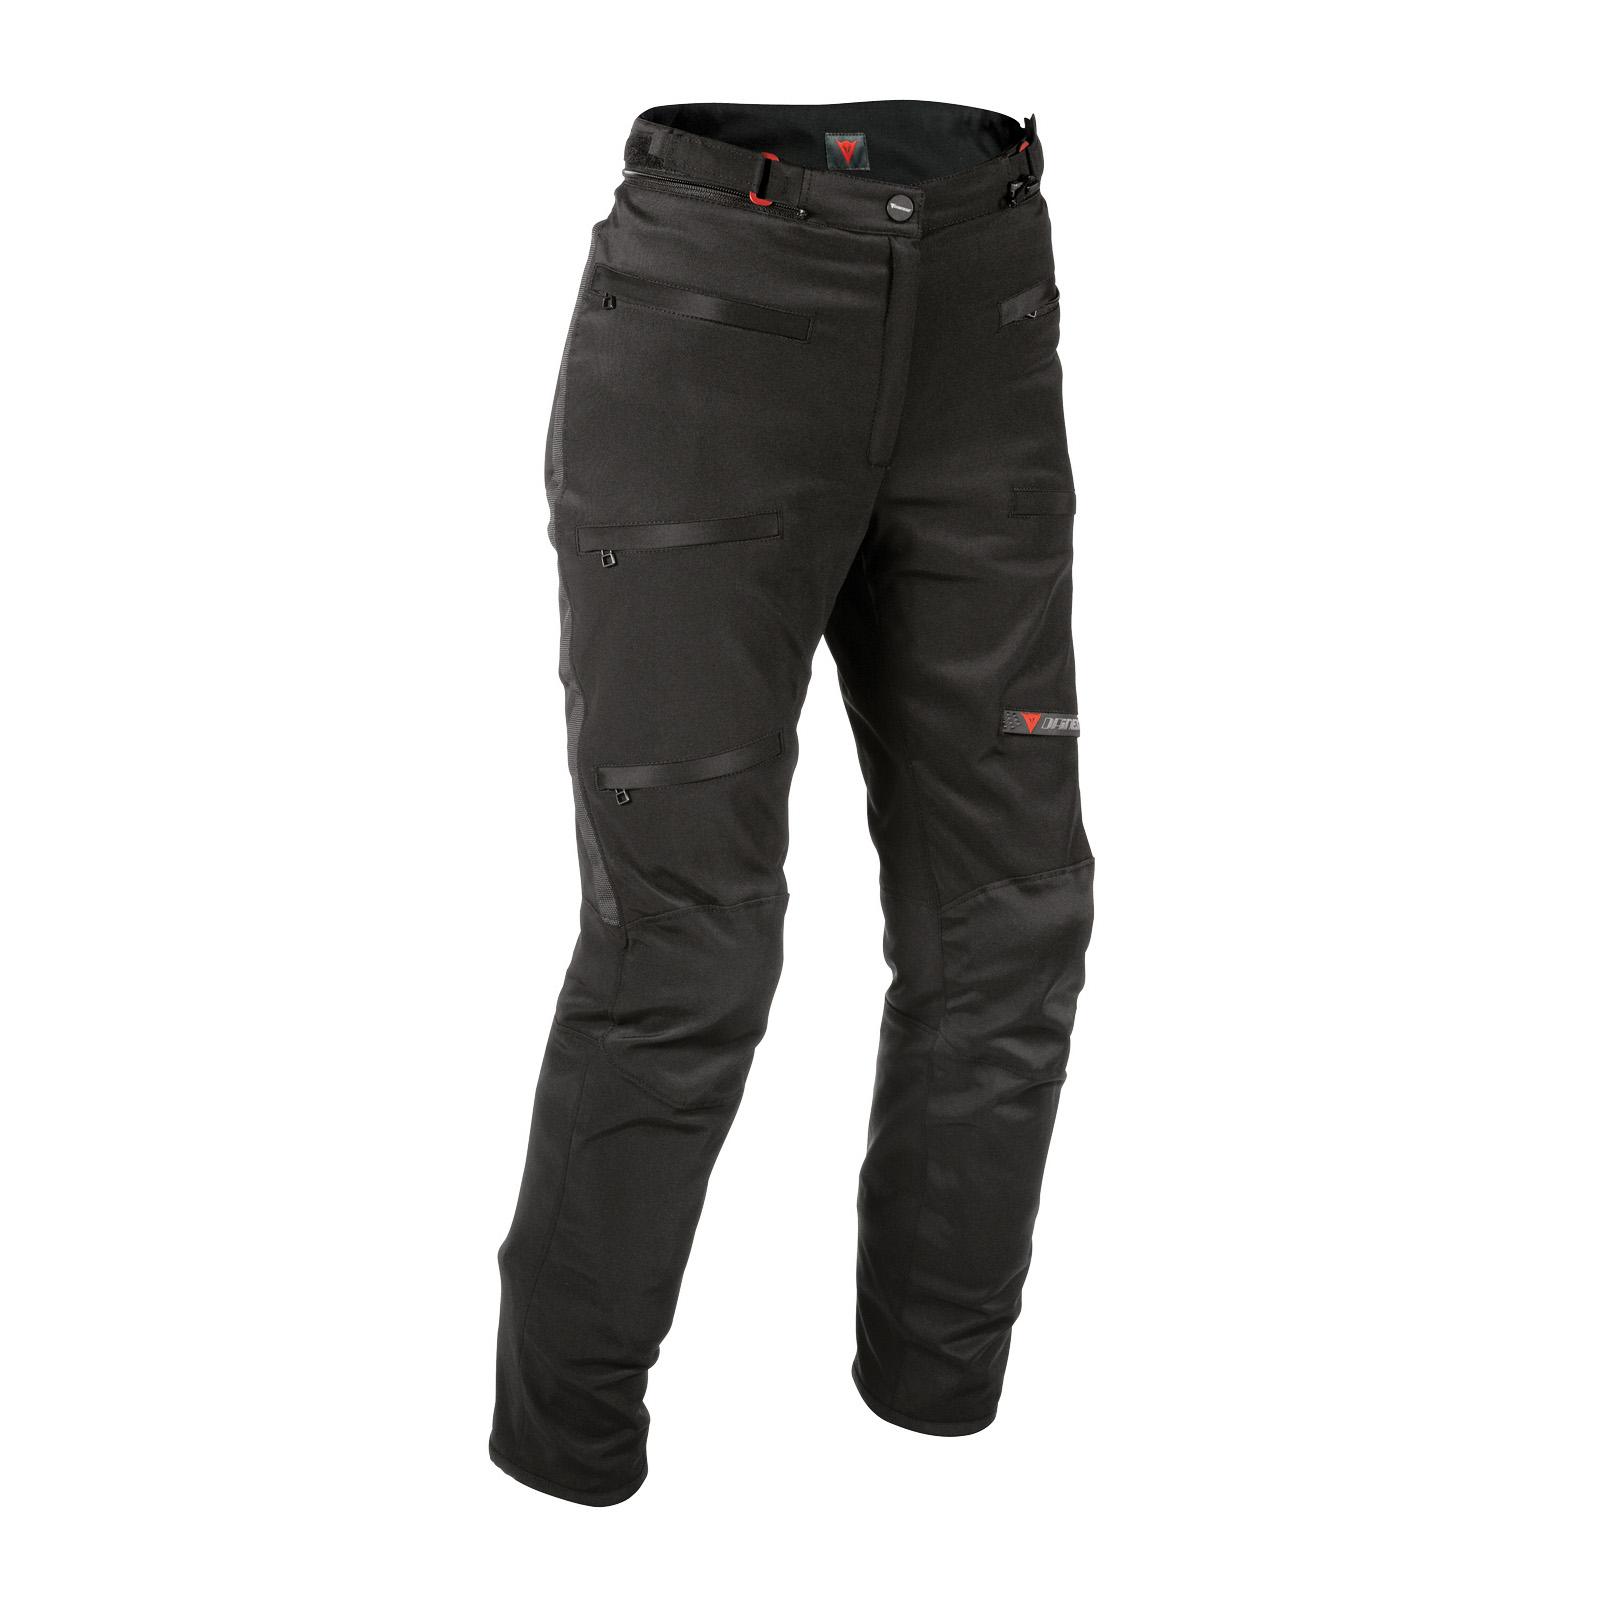 DAINESE P - Sherman Pro D -Dry Lady